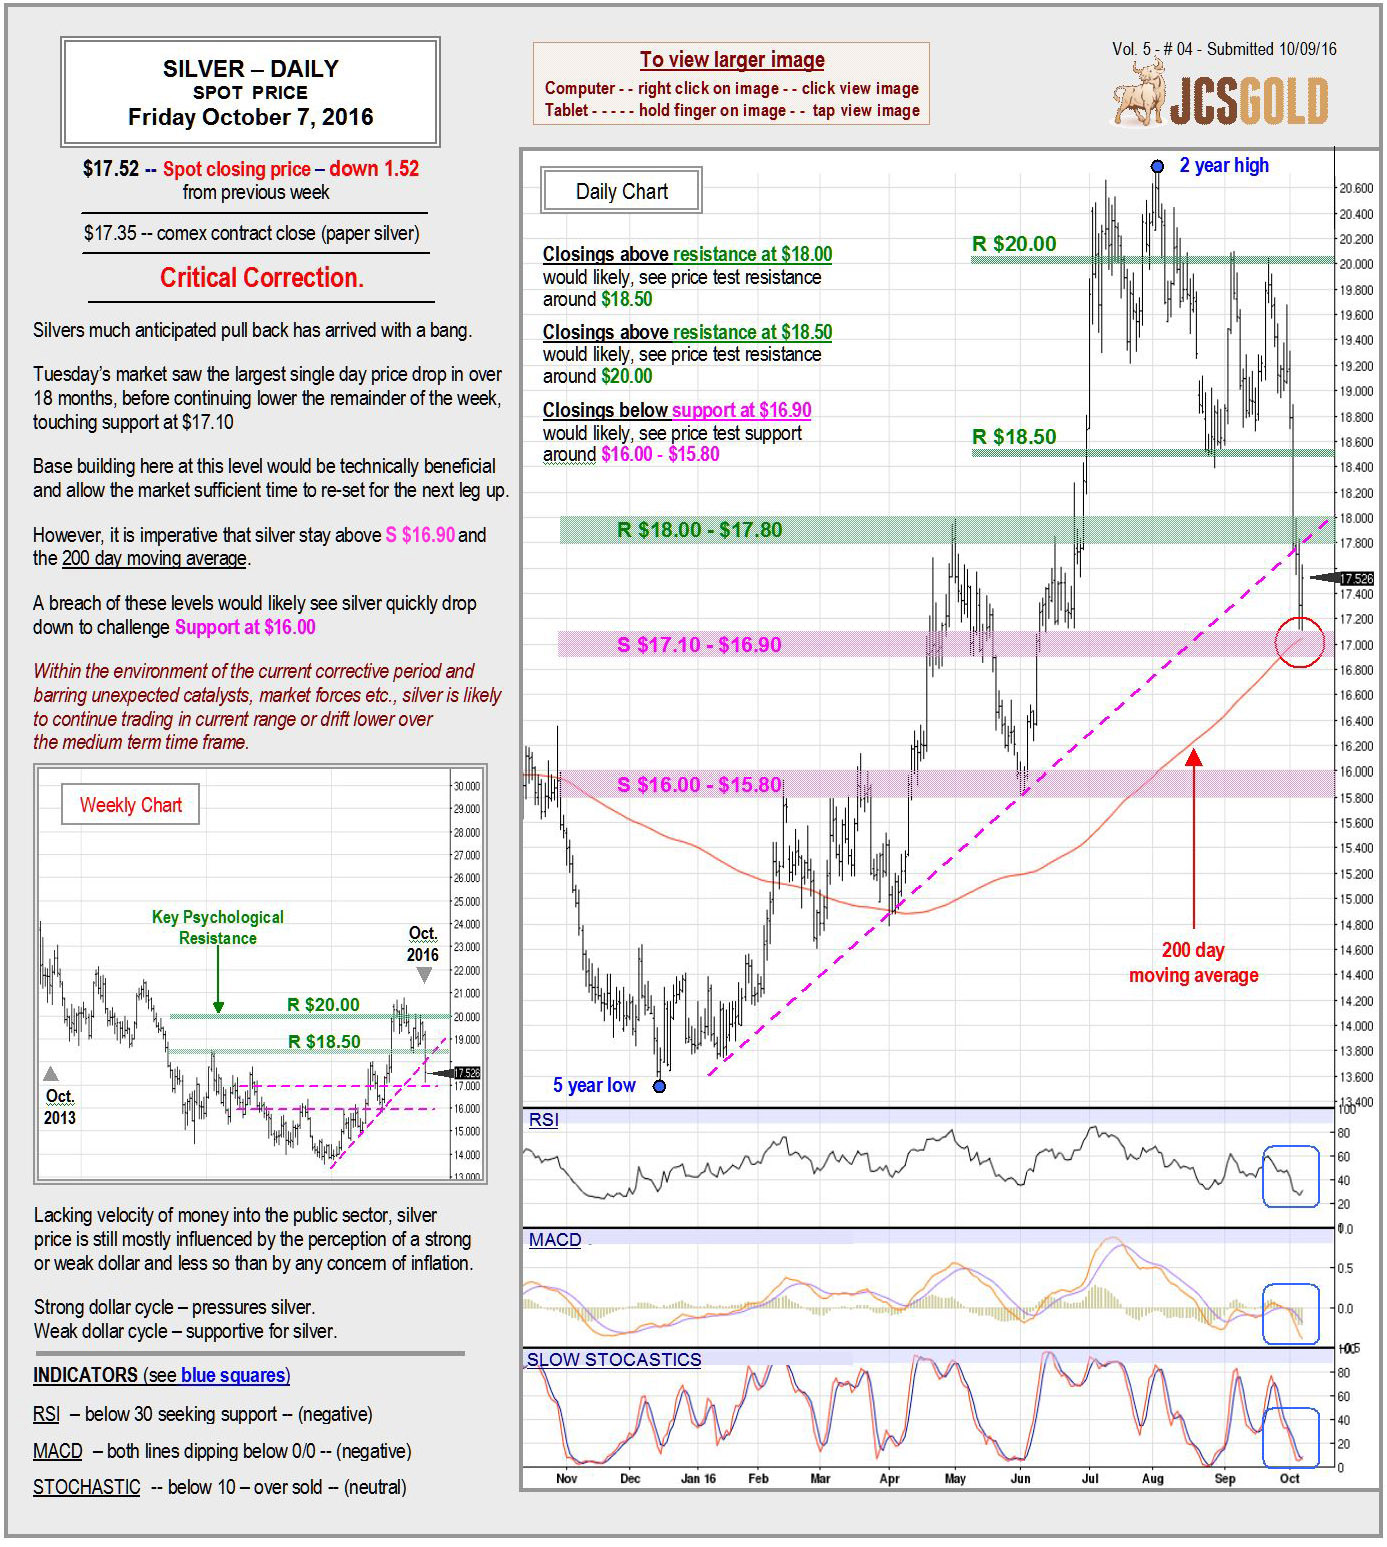 Oct 7, 2016 chart & commentary